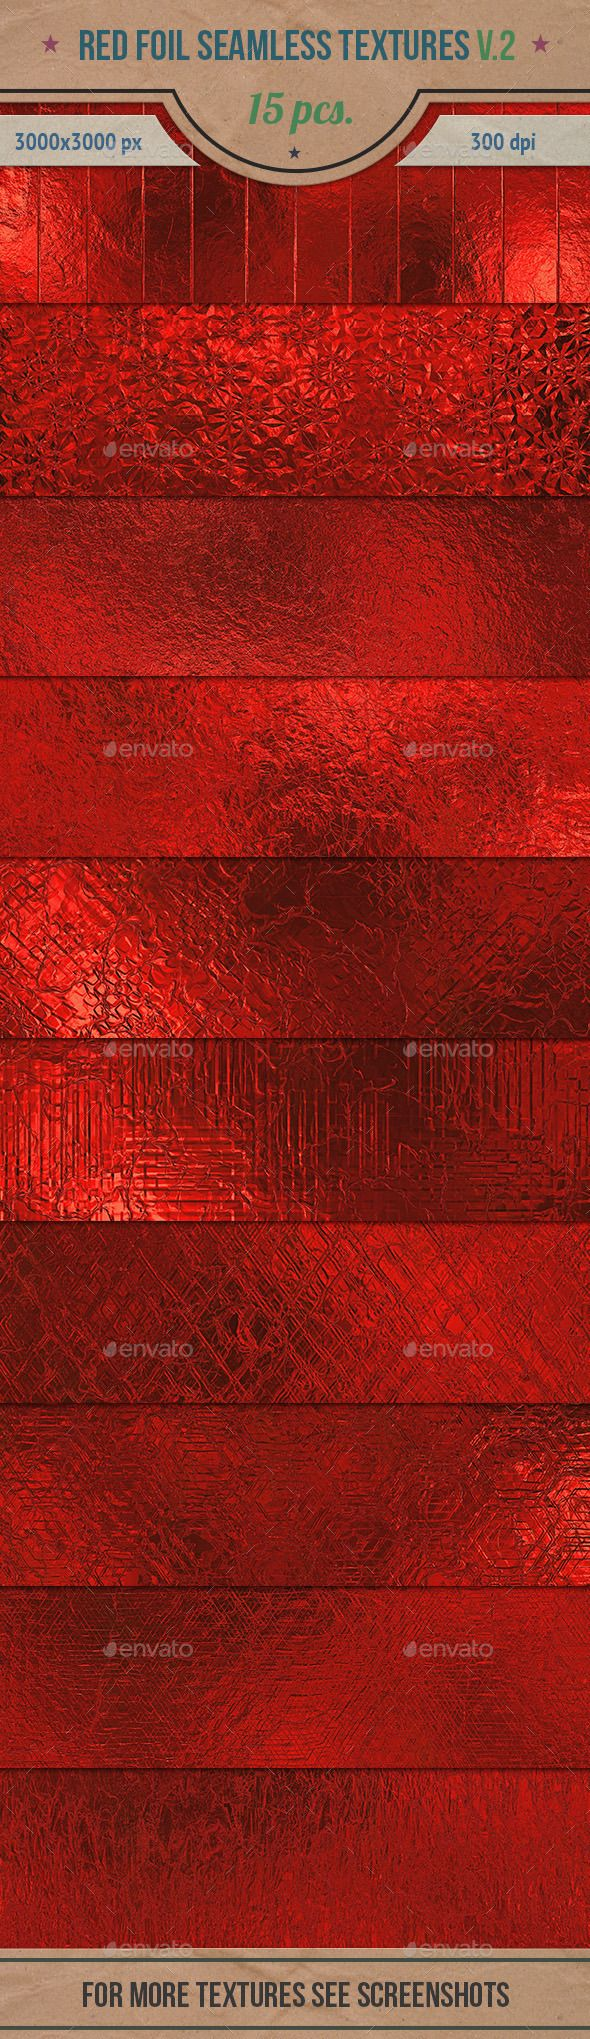 Red Foil Seamless HD Textures Pack v.2